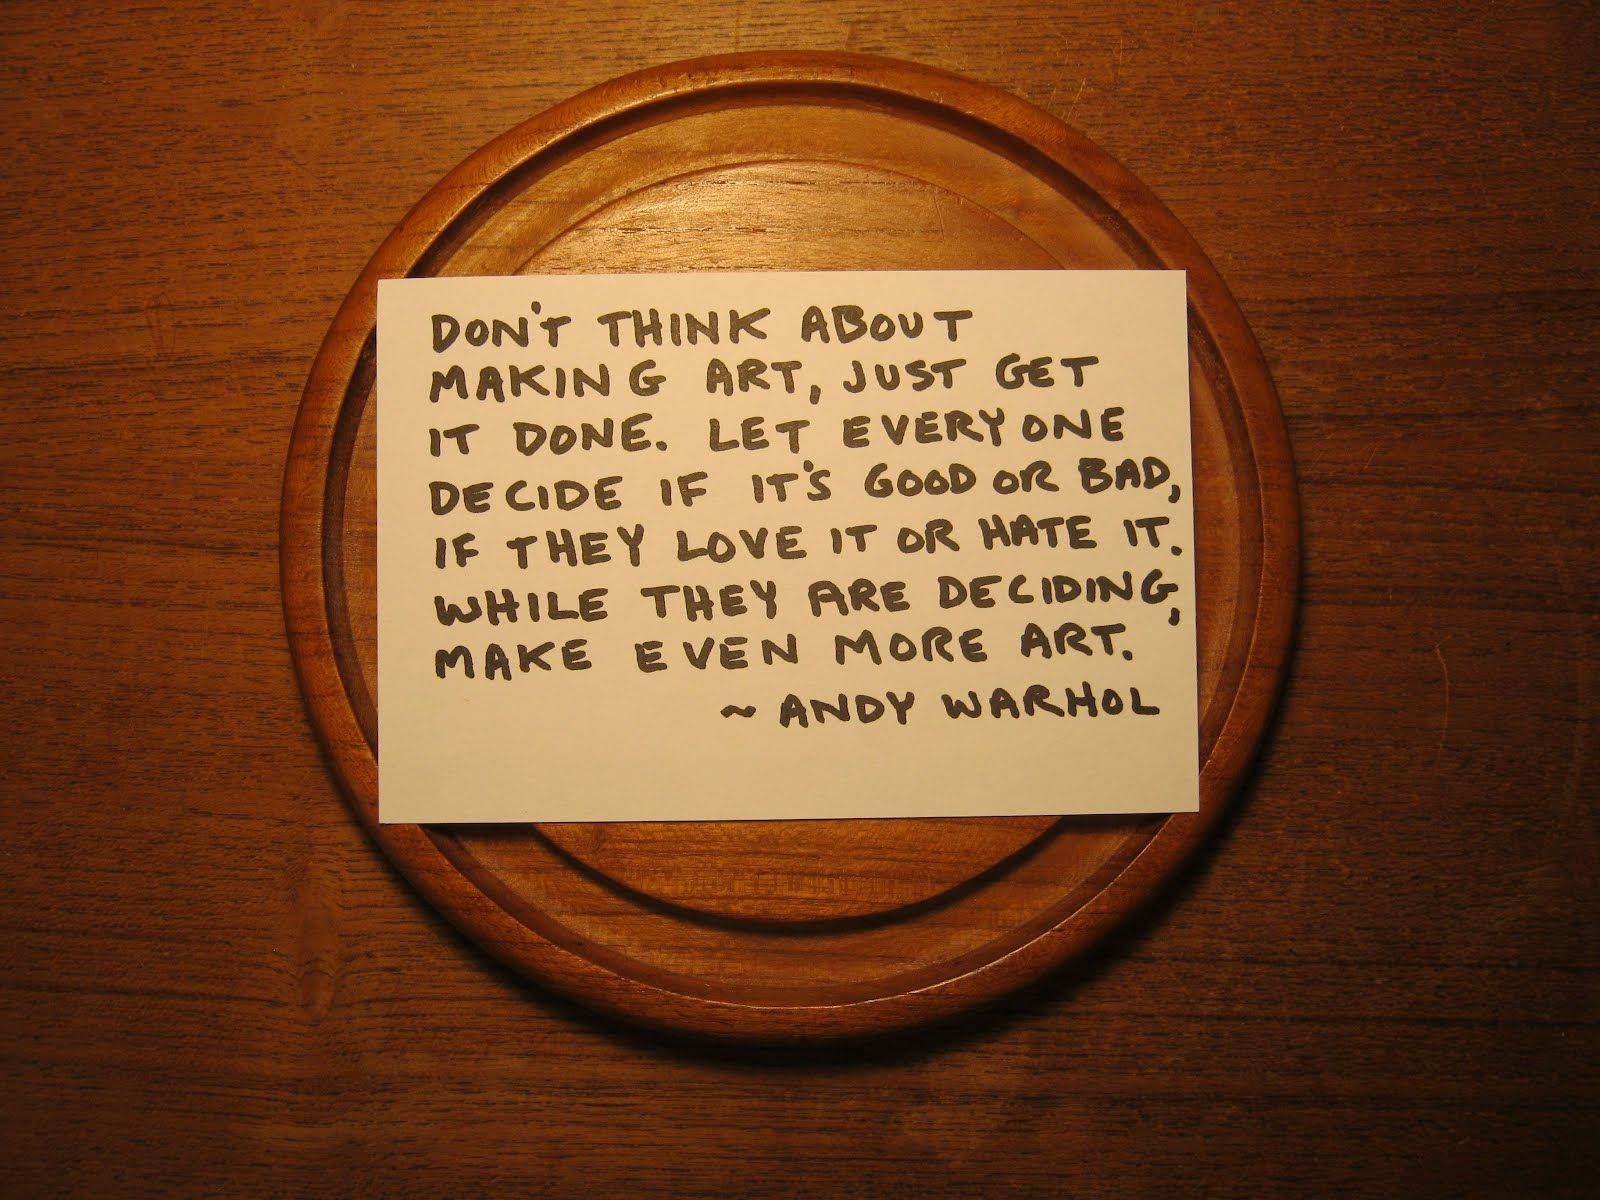 Andy Warhol Quotes Cute Andy Warhol Quotesquotesgram  Inspiration Inspiring Stuff